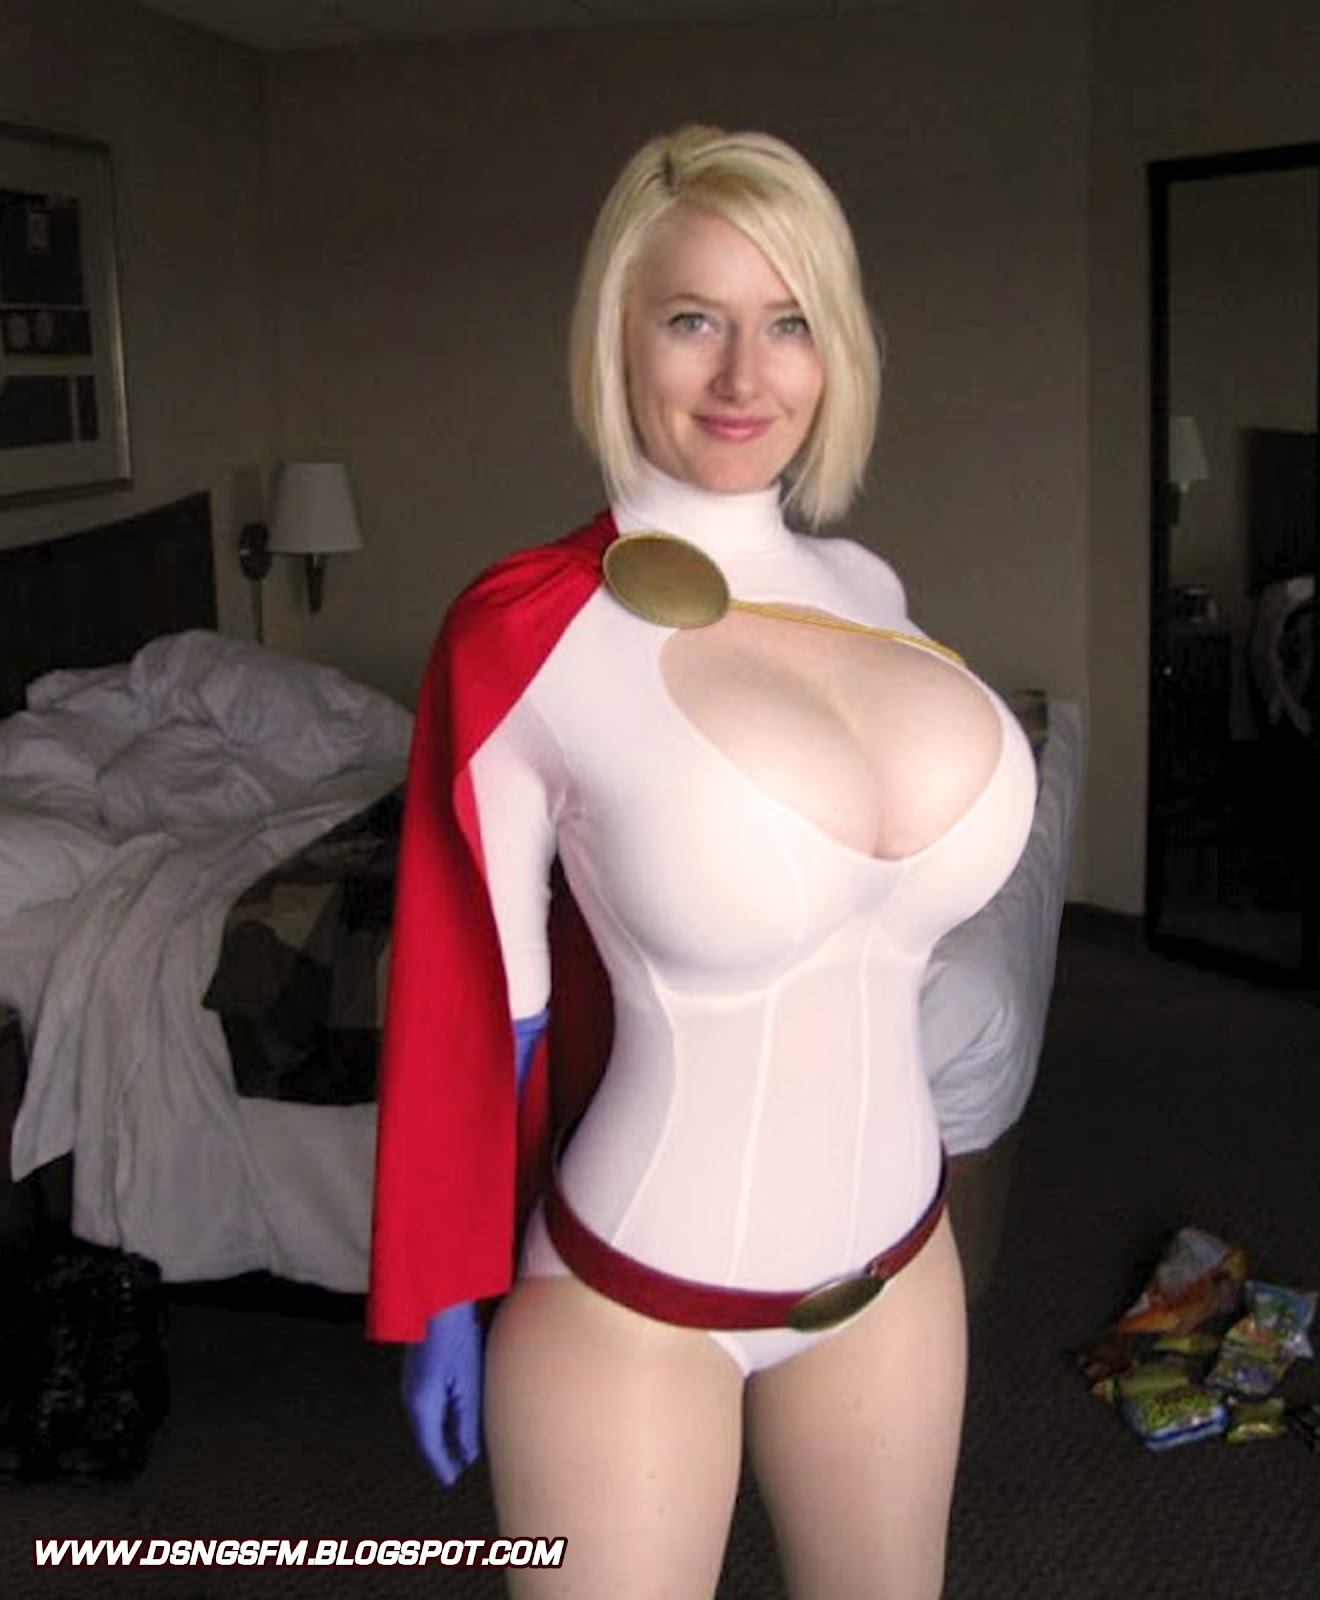 Opinion, big boob power girl cosplay